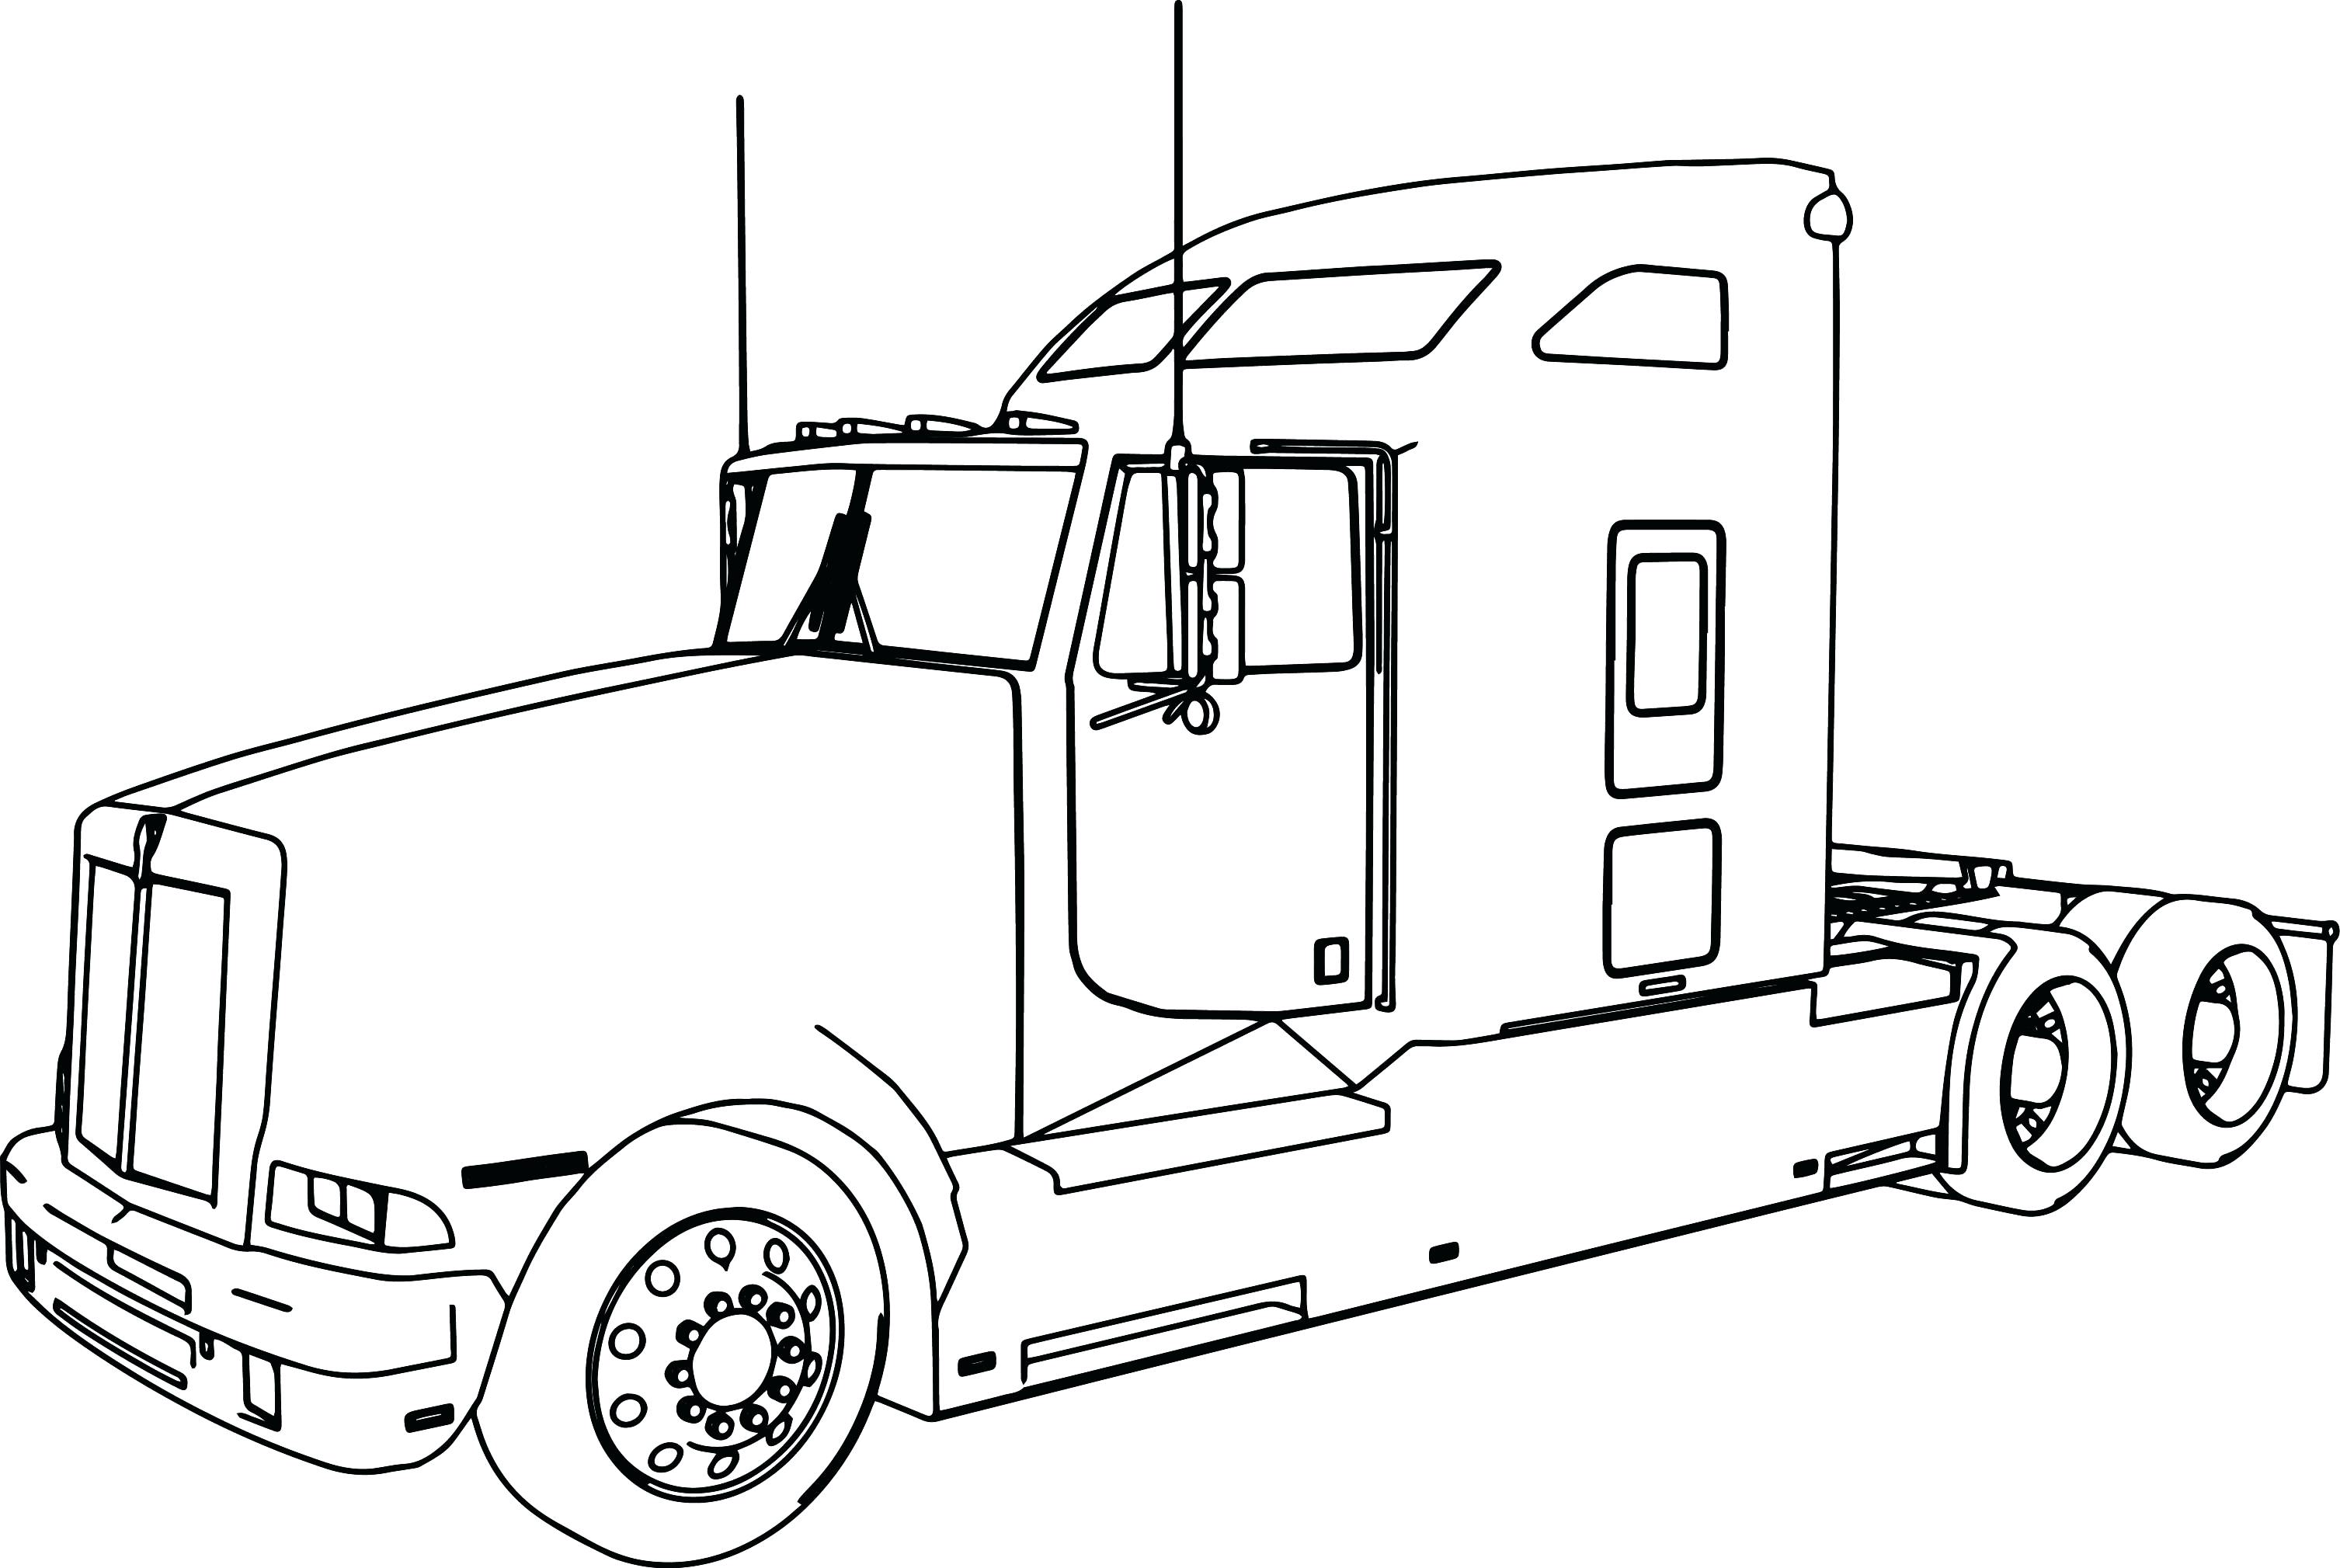 3013x2019 Truck Coloring Pages Trailer Semi Page Clip Art Vector All